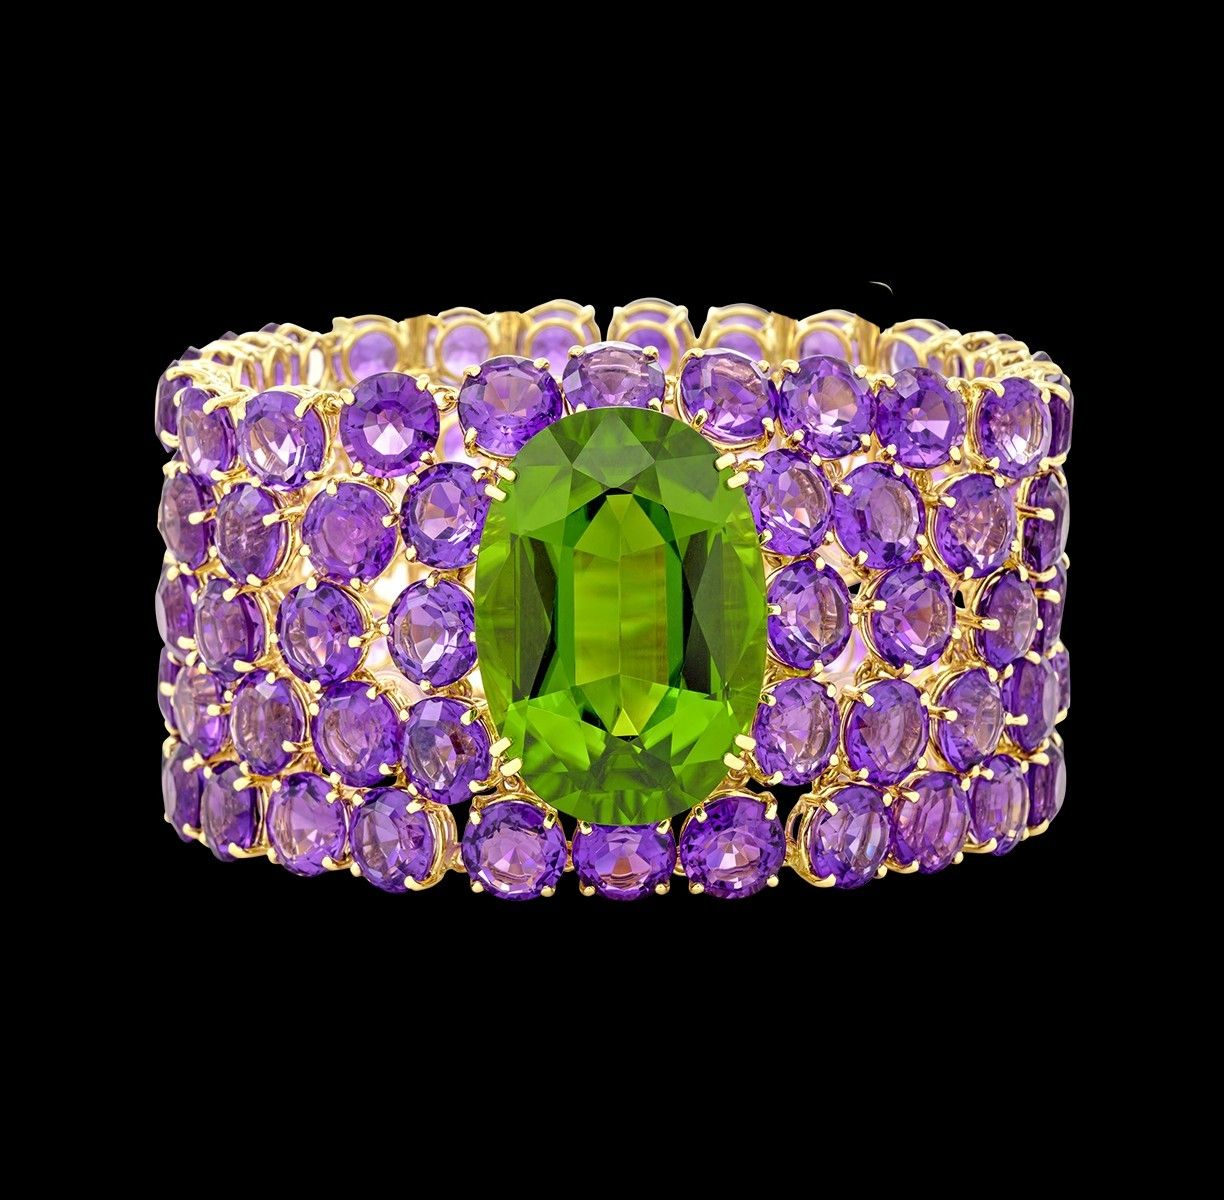 Margot MCKINNEY Jewelry - New York collection-  Peridot (49.20ct)  and  Amethyst (162.28ct) Cuff Bracelet in 18k yellow Gold.